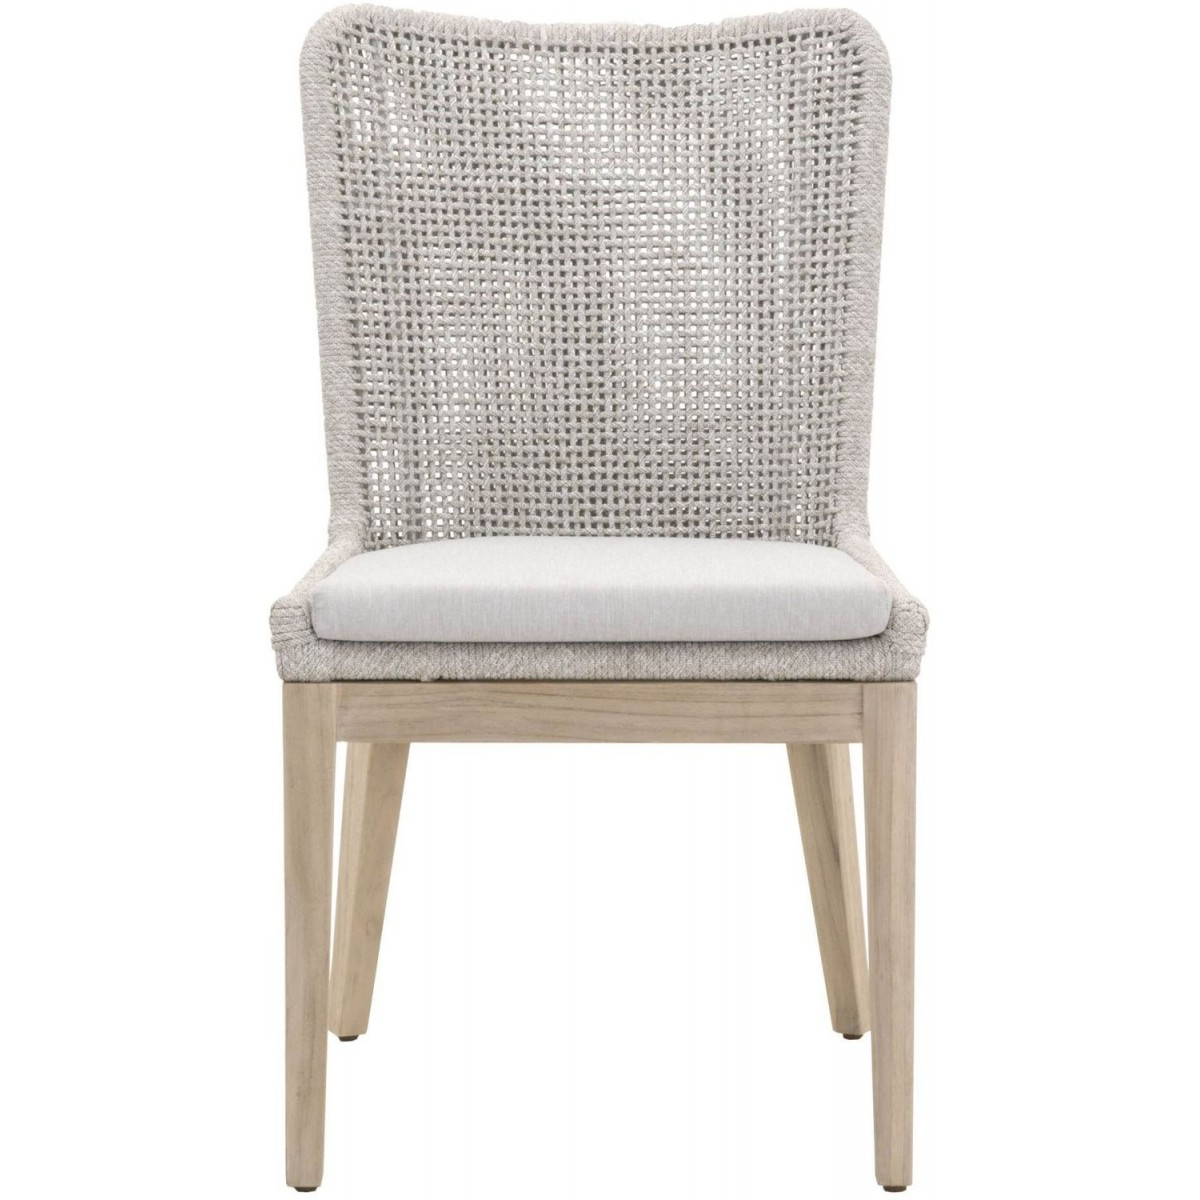 Orient Express Woven Mesh Outdoor Dining Chair – Set Of 2 Within Most Recent Kincaid Teak Patio Sofas With Sunbrella Cushions (Gallery 20 of 25)